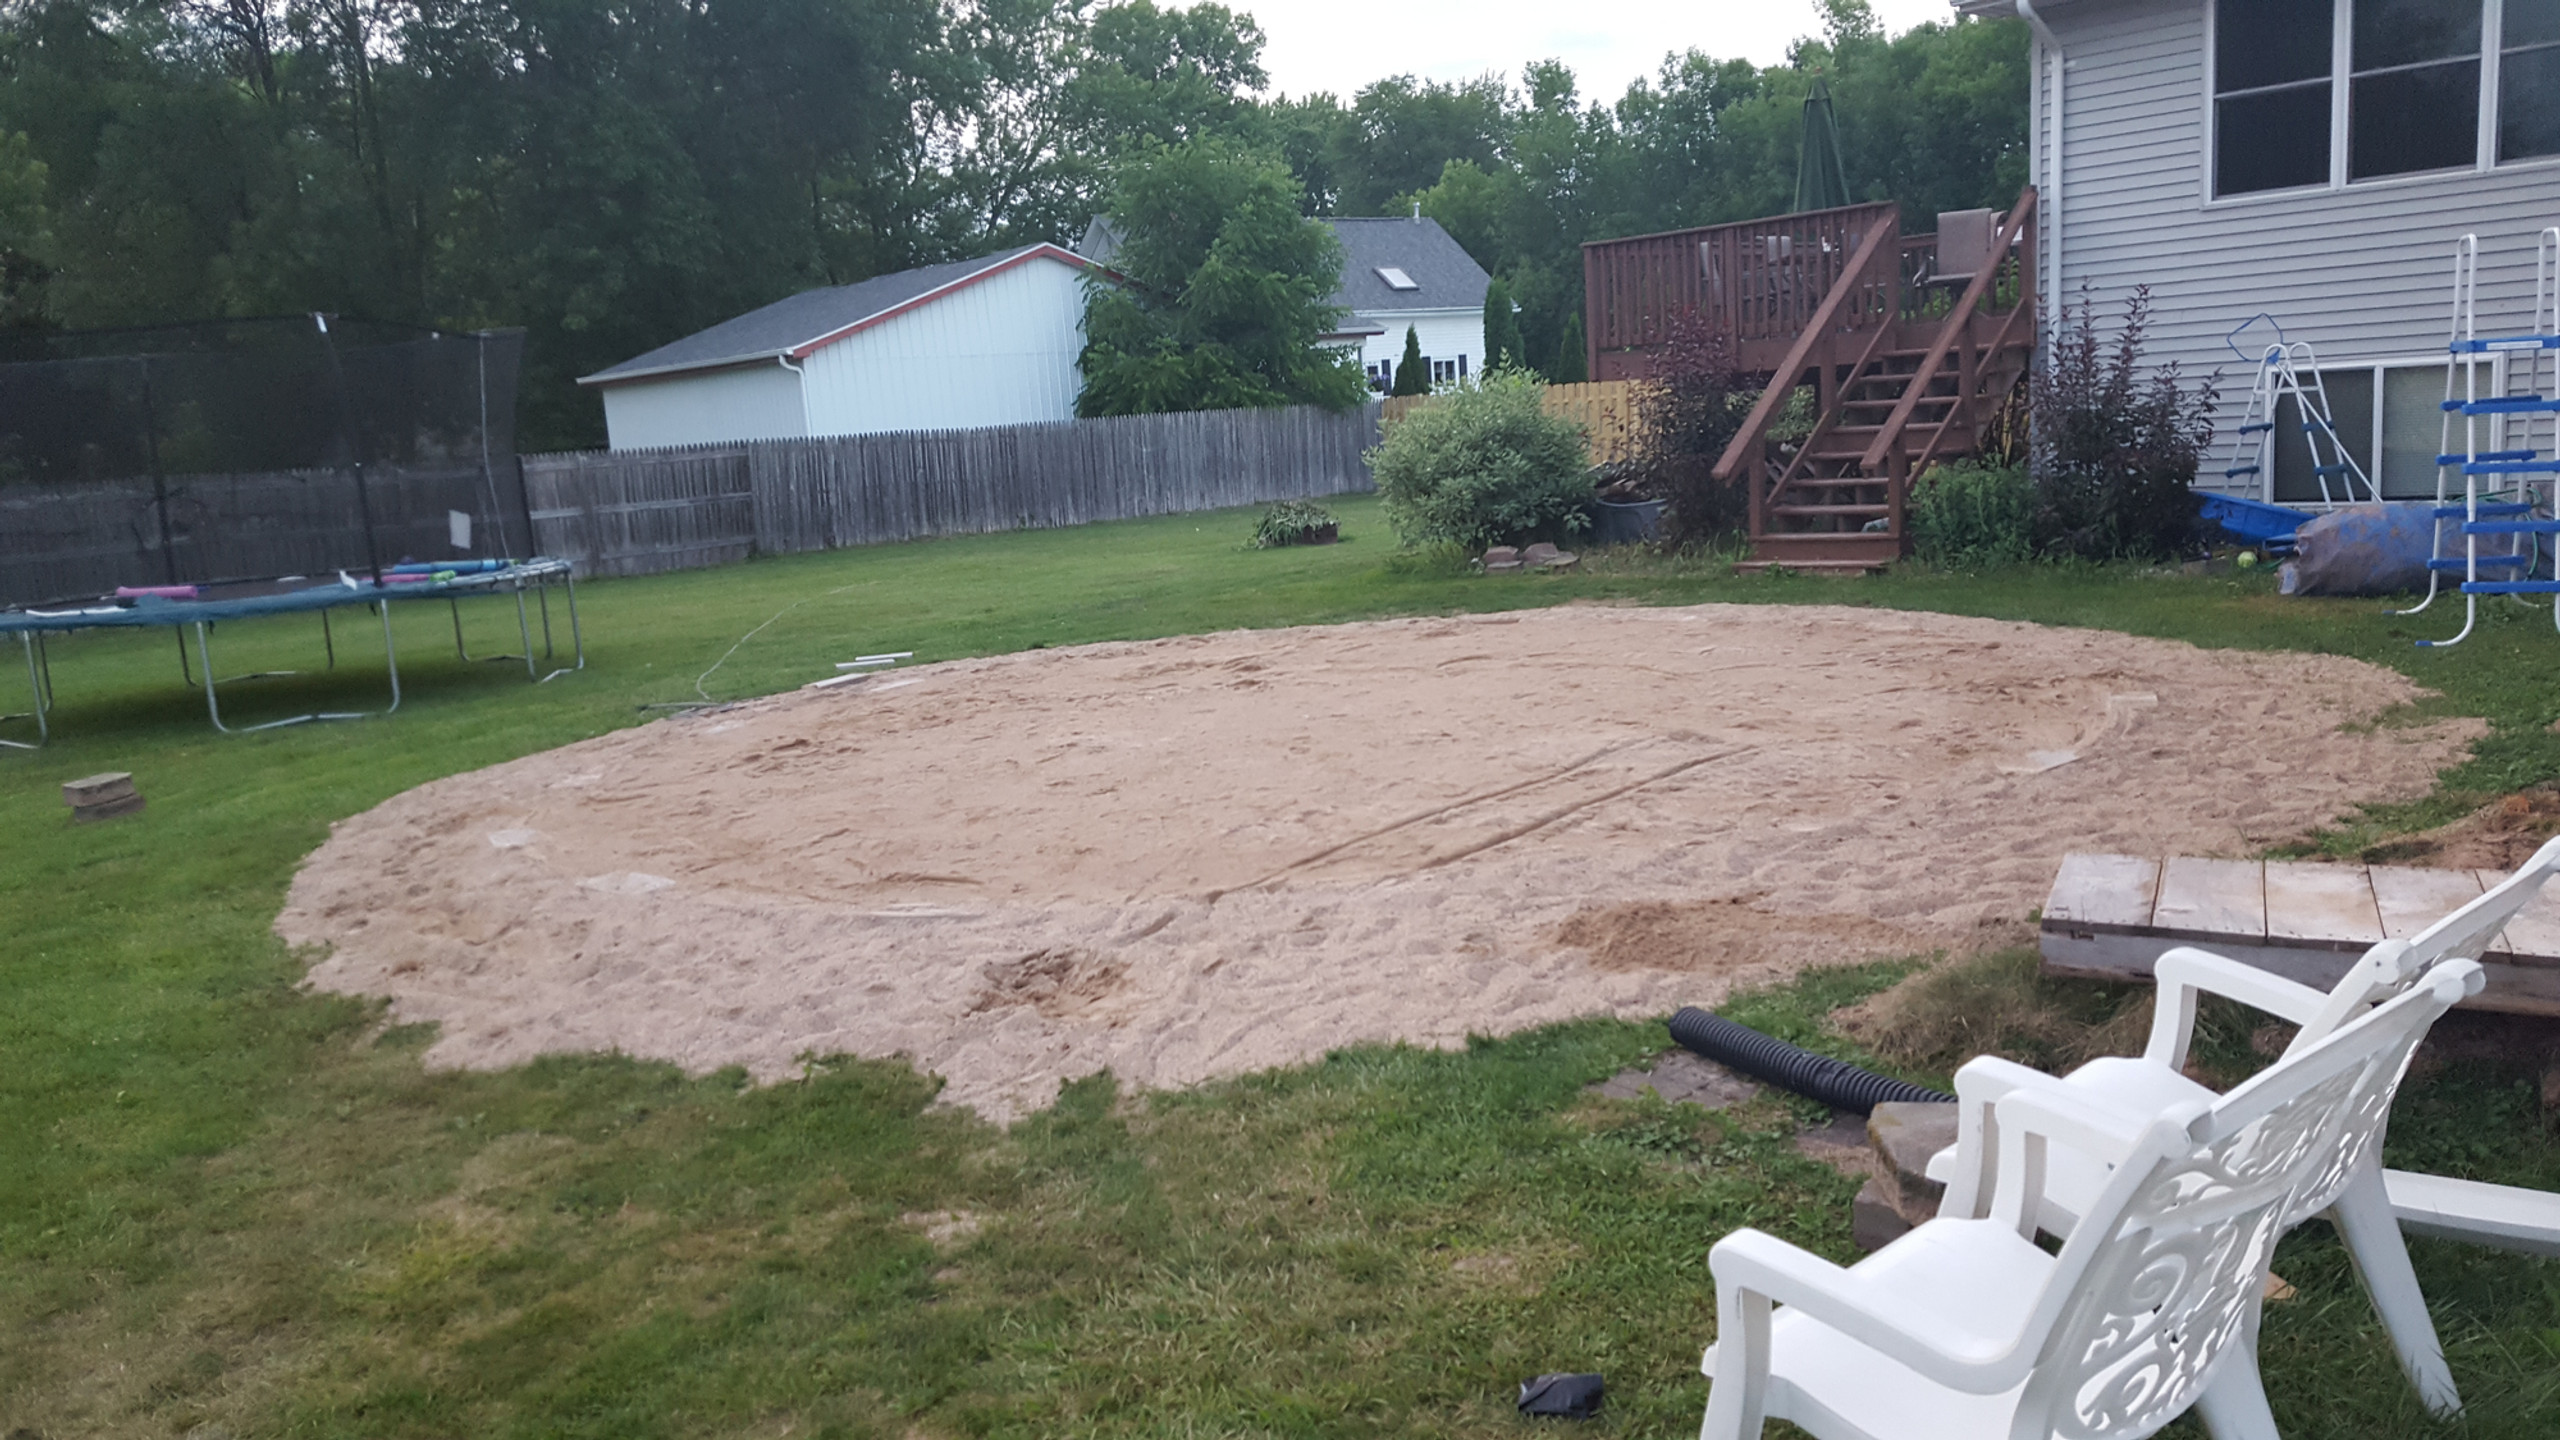 This photo shows how certain builders use sand and patio blocks to install their pools. This process leads to the damage seen in the other photos in this gallery